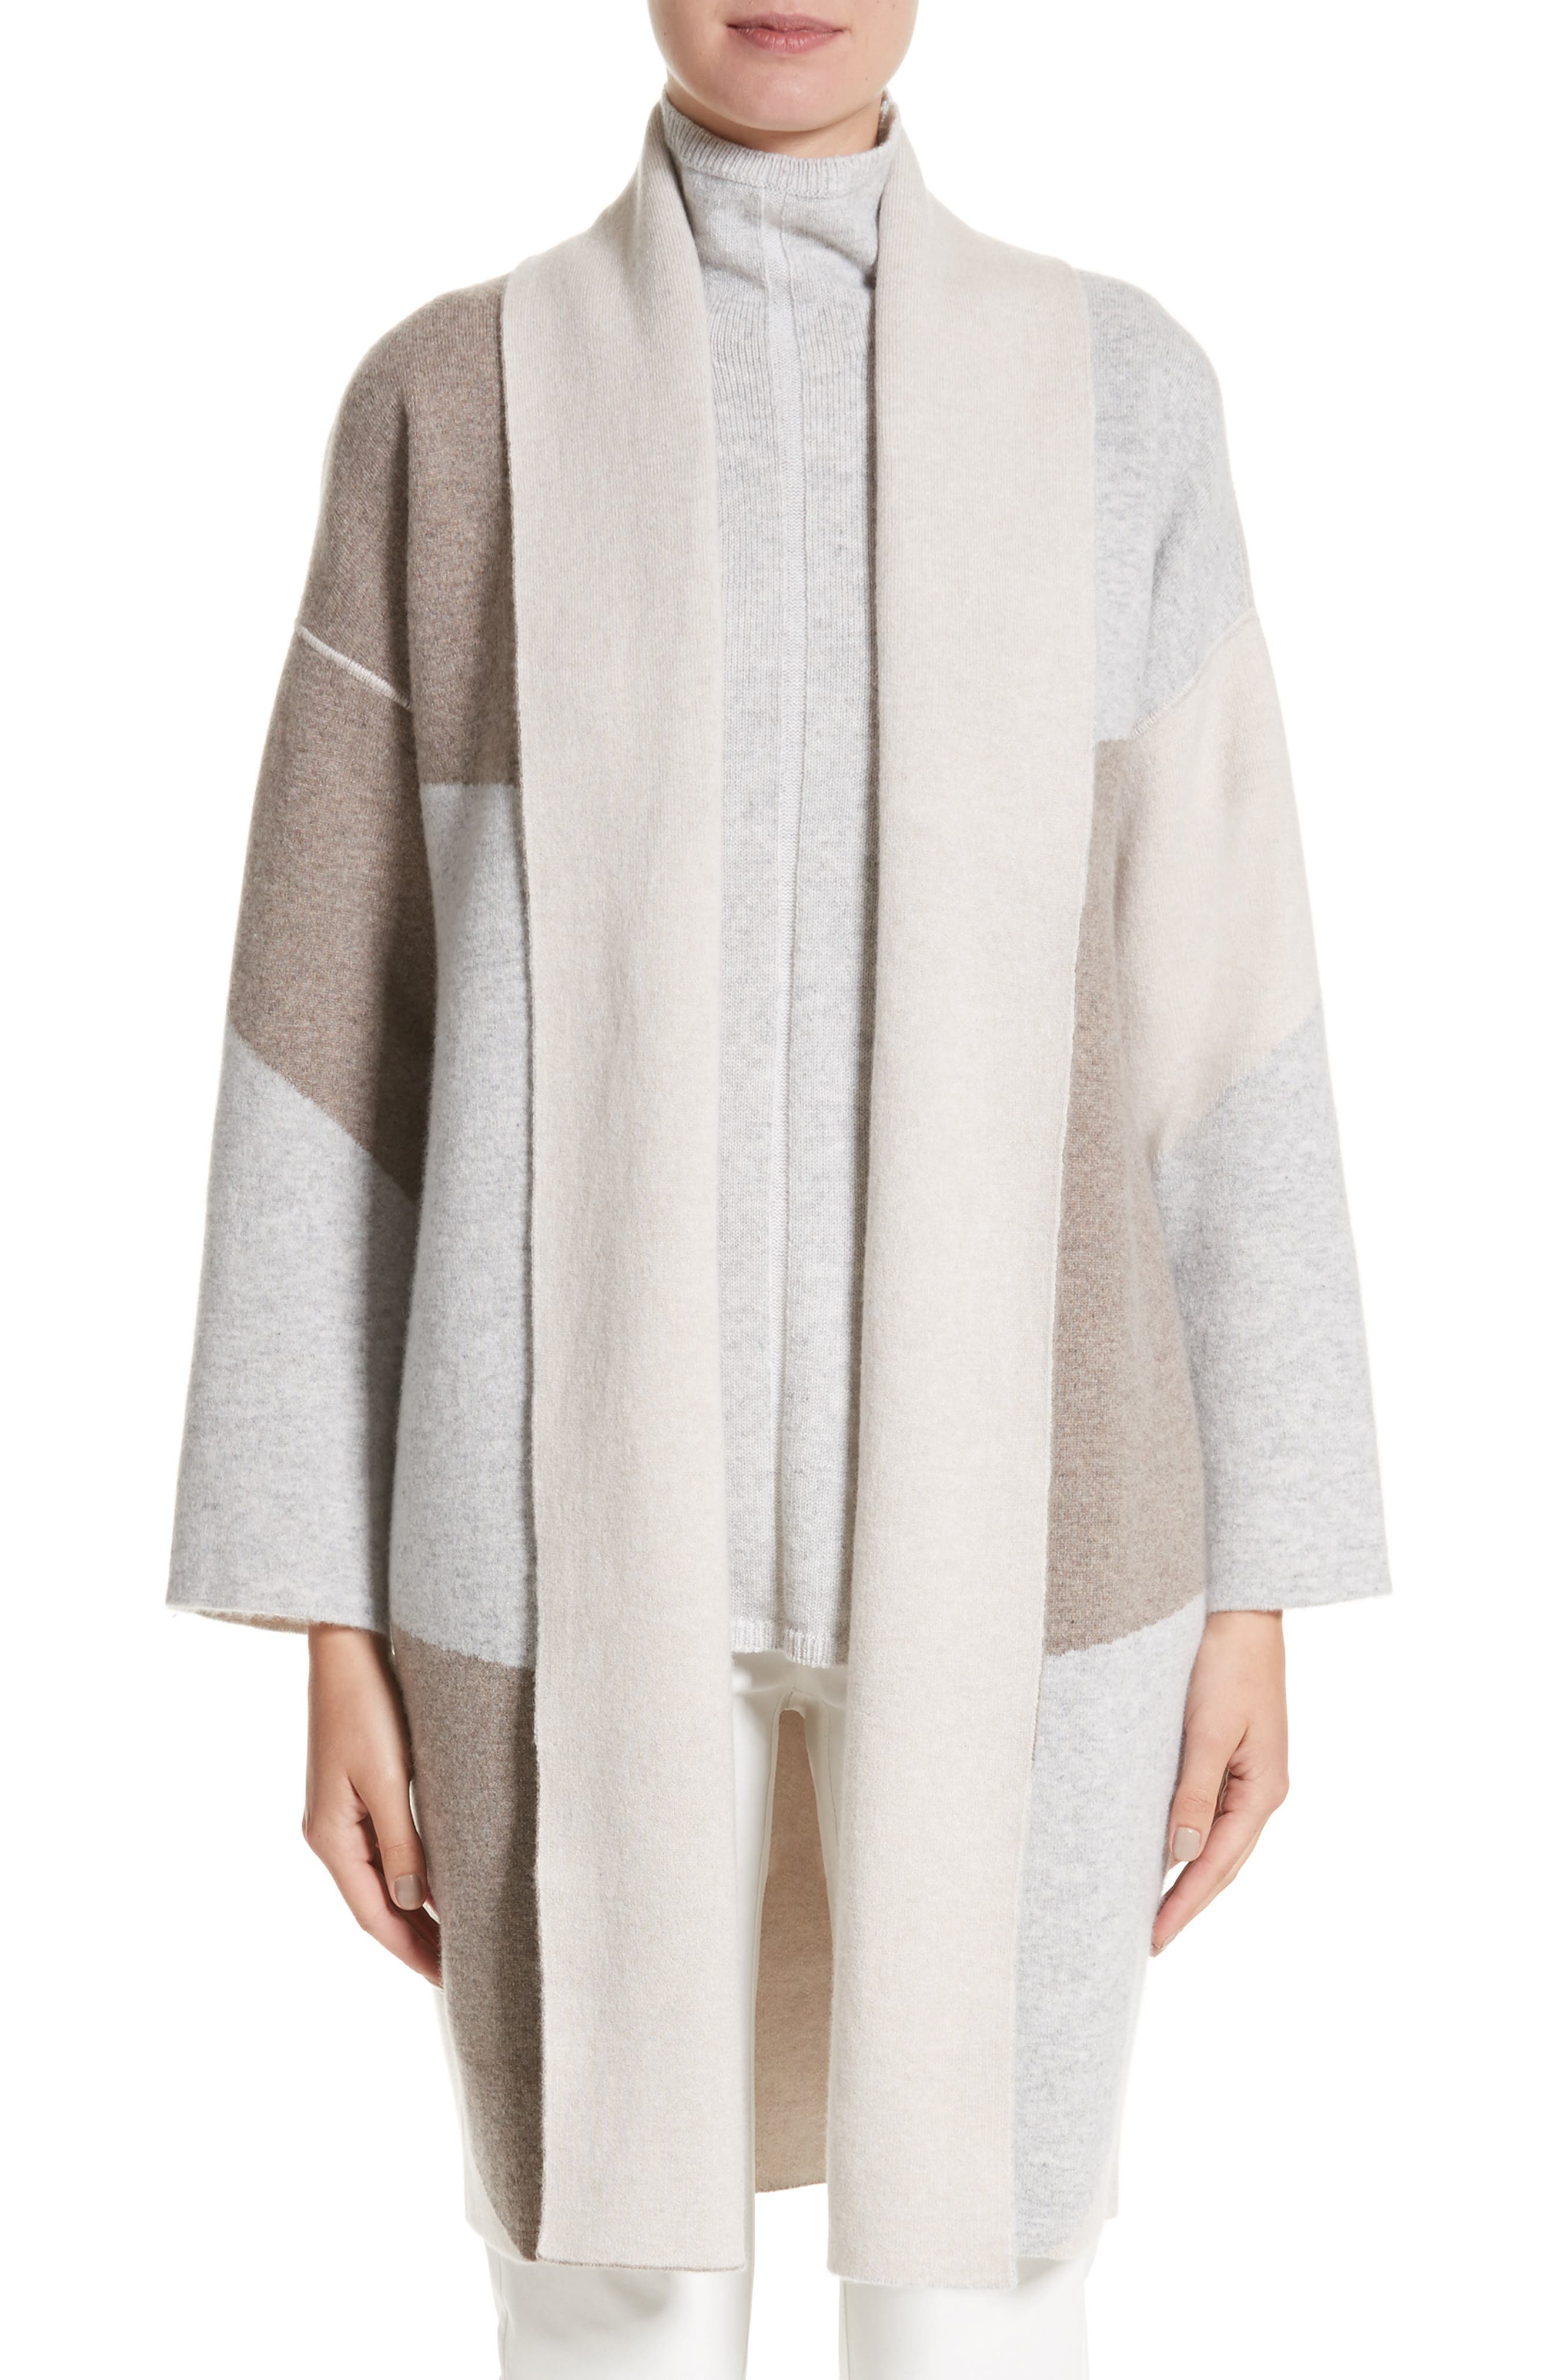 Stretch Cashmere Reversible Felted Colorblock Cardigan,                             Main thumbnail 1, color,                             020